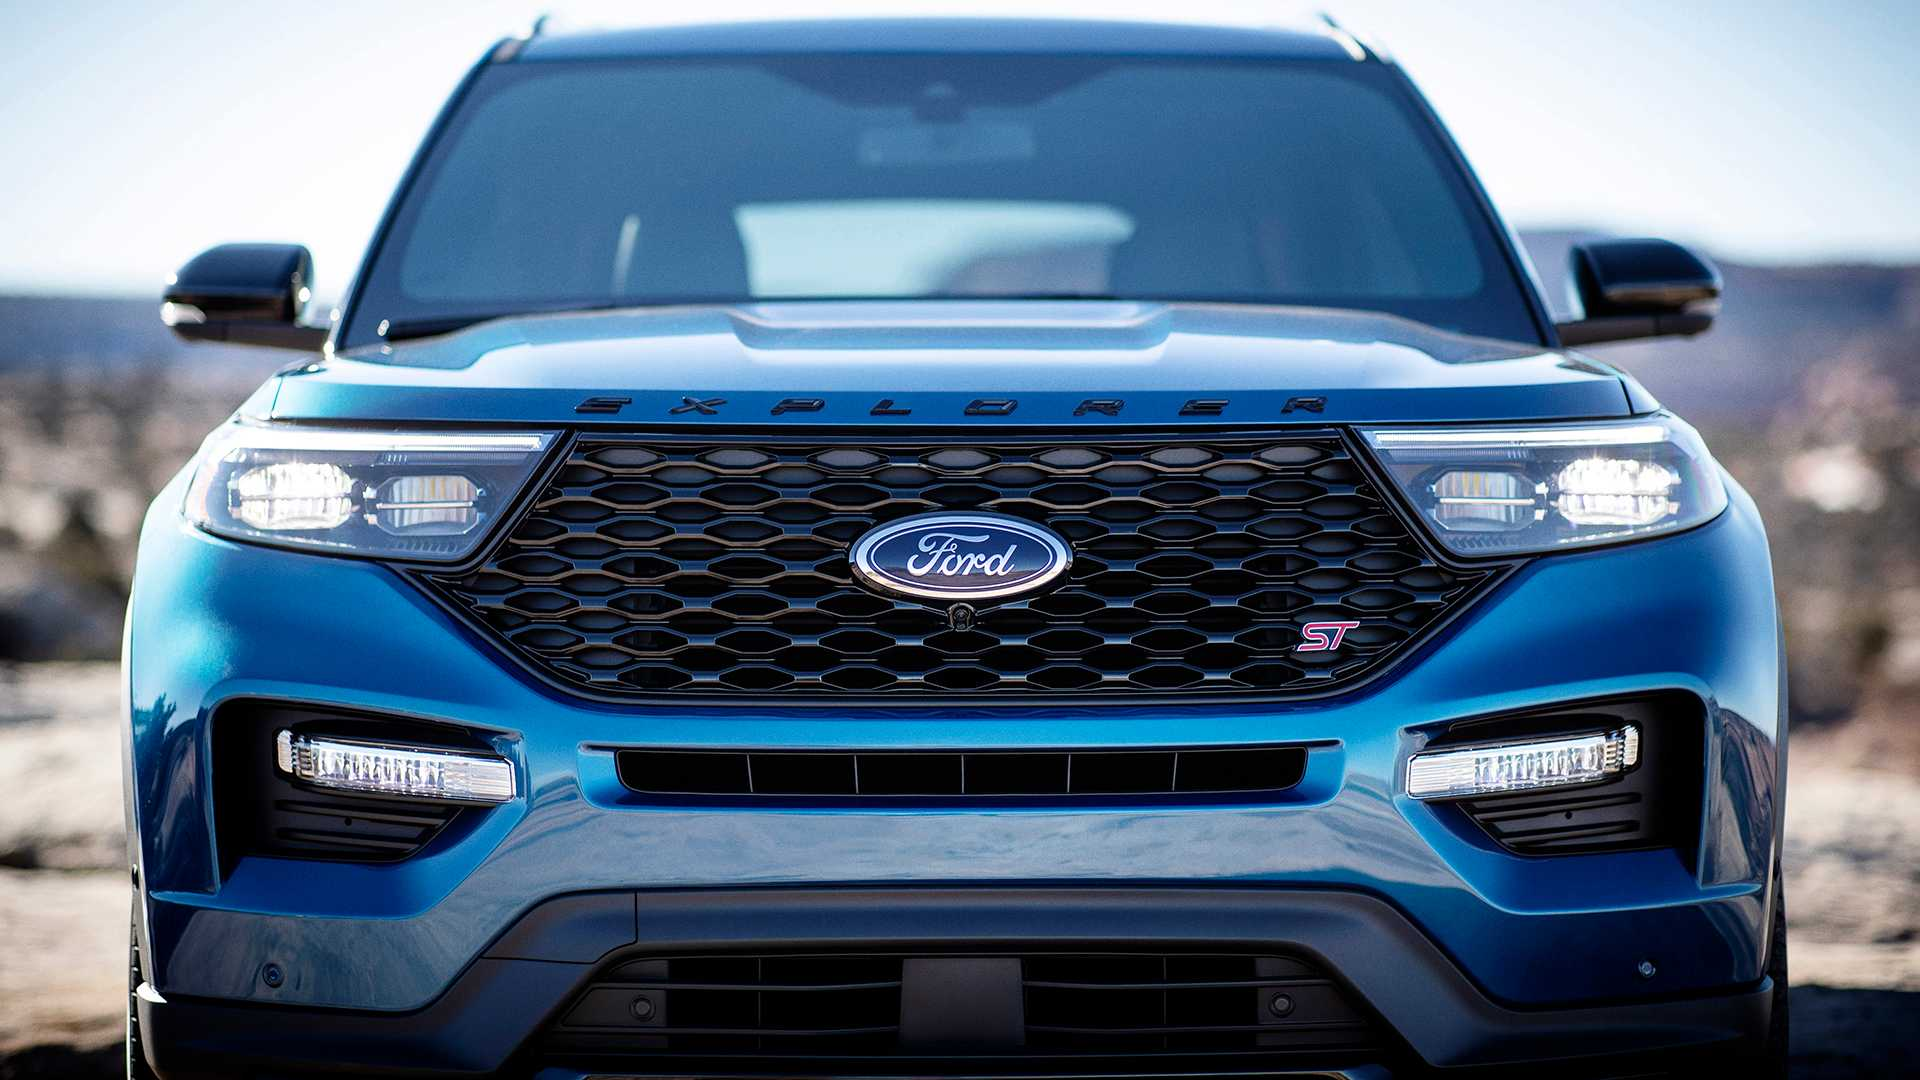 40 The 2020 Ford Explorer Sports First Drive